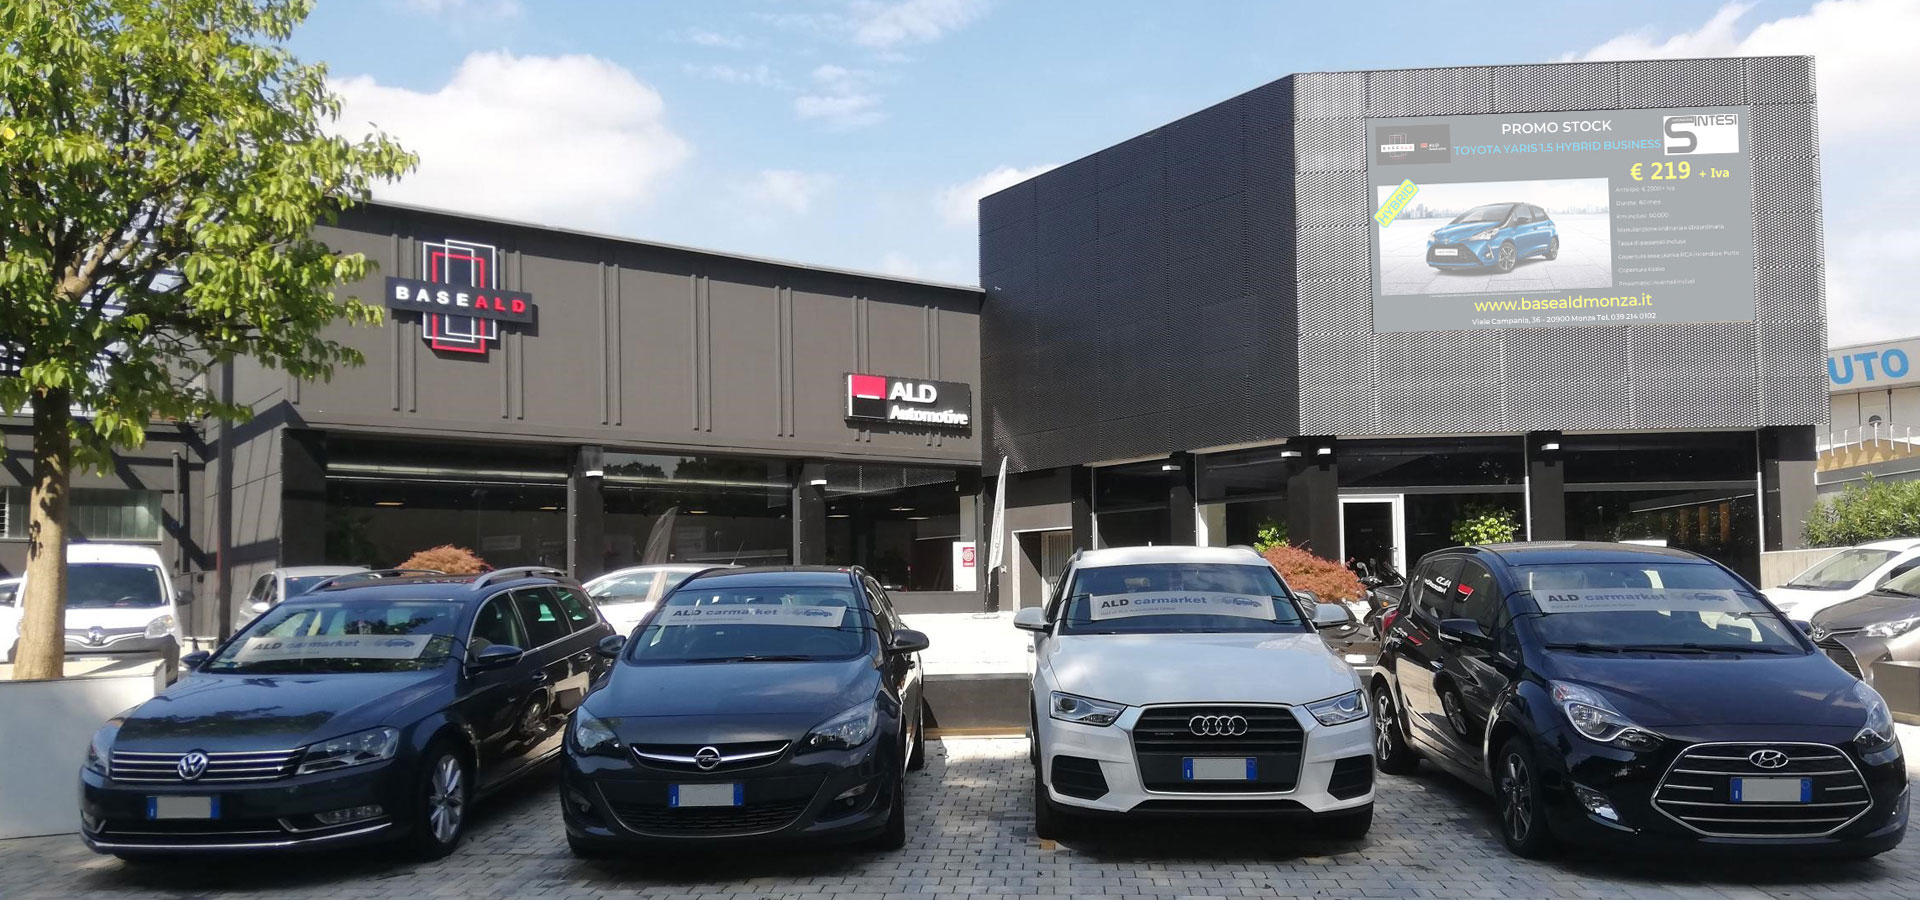 Sintesi Automotive Milano